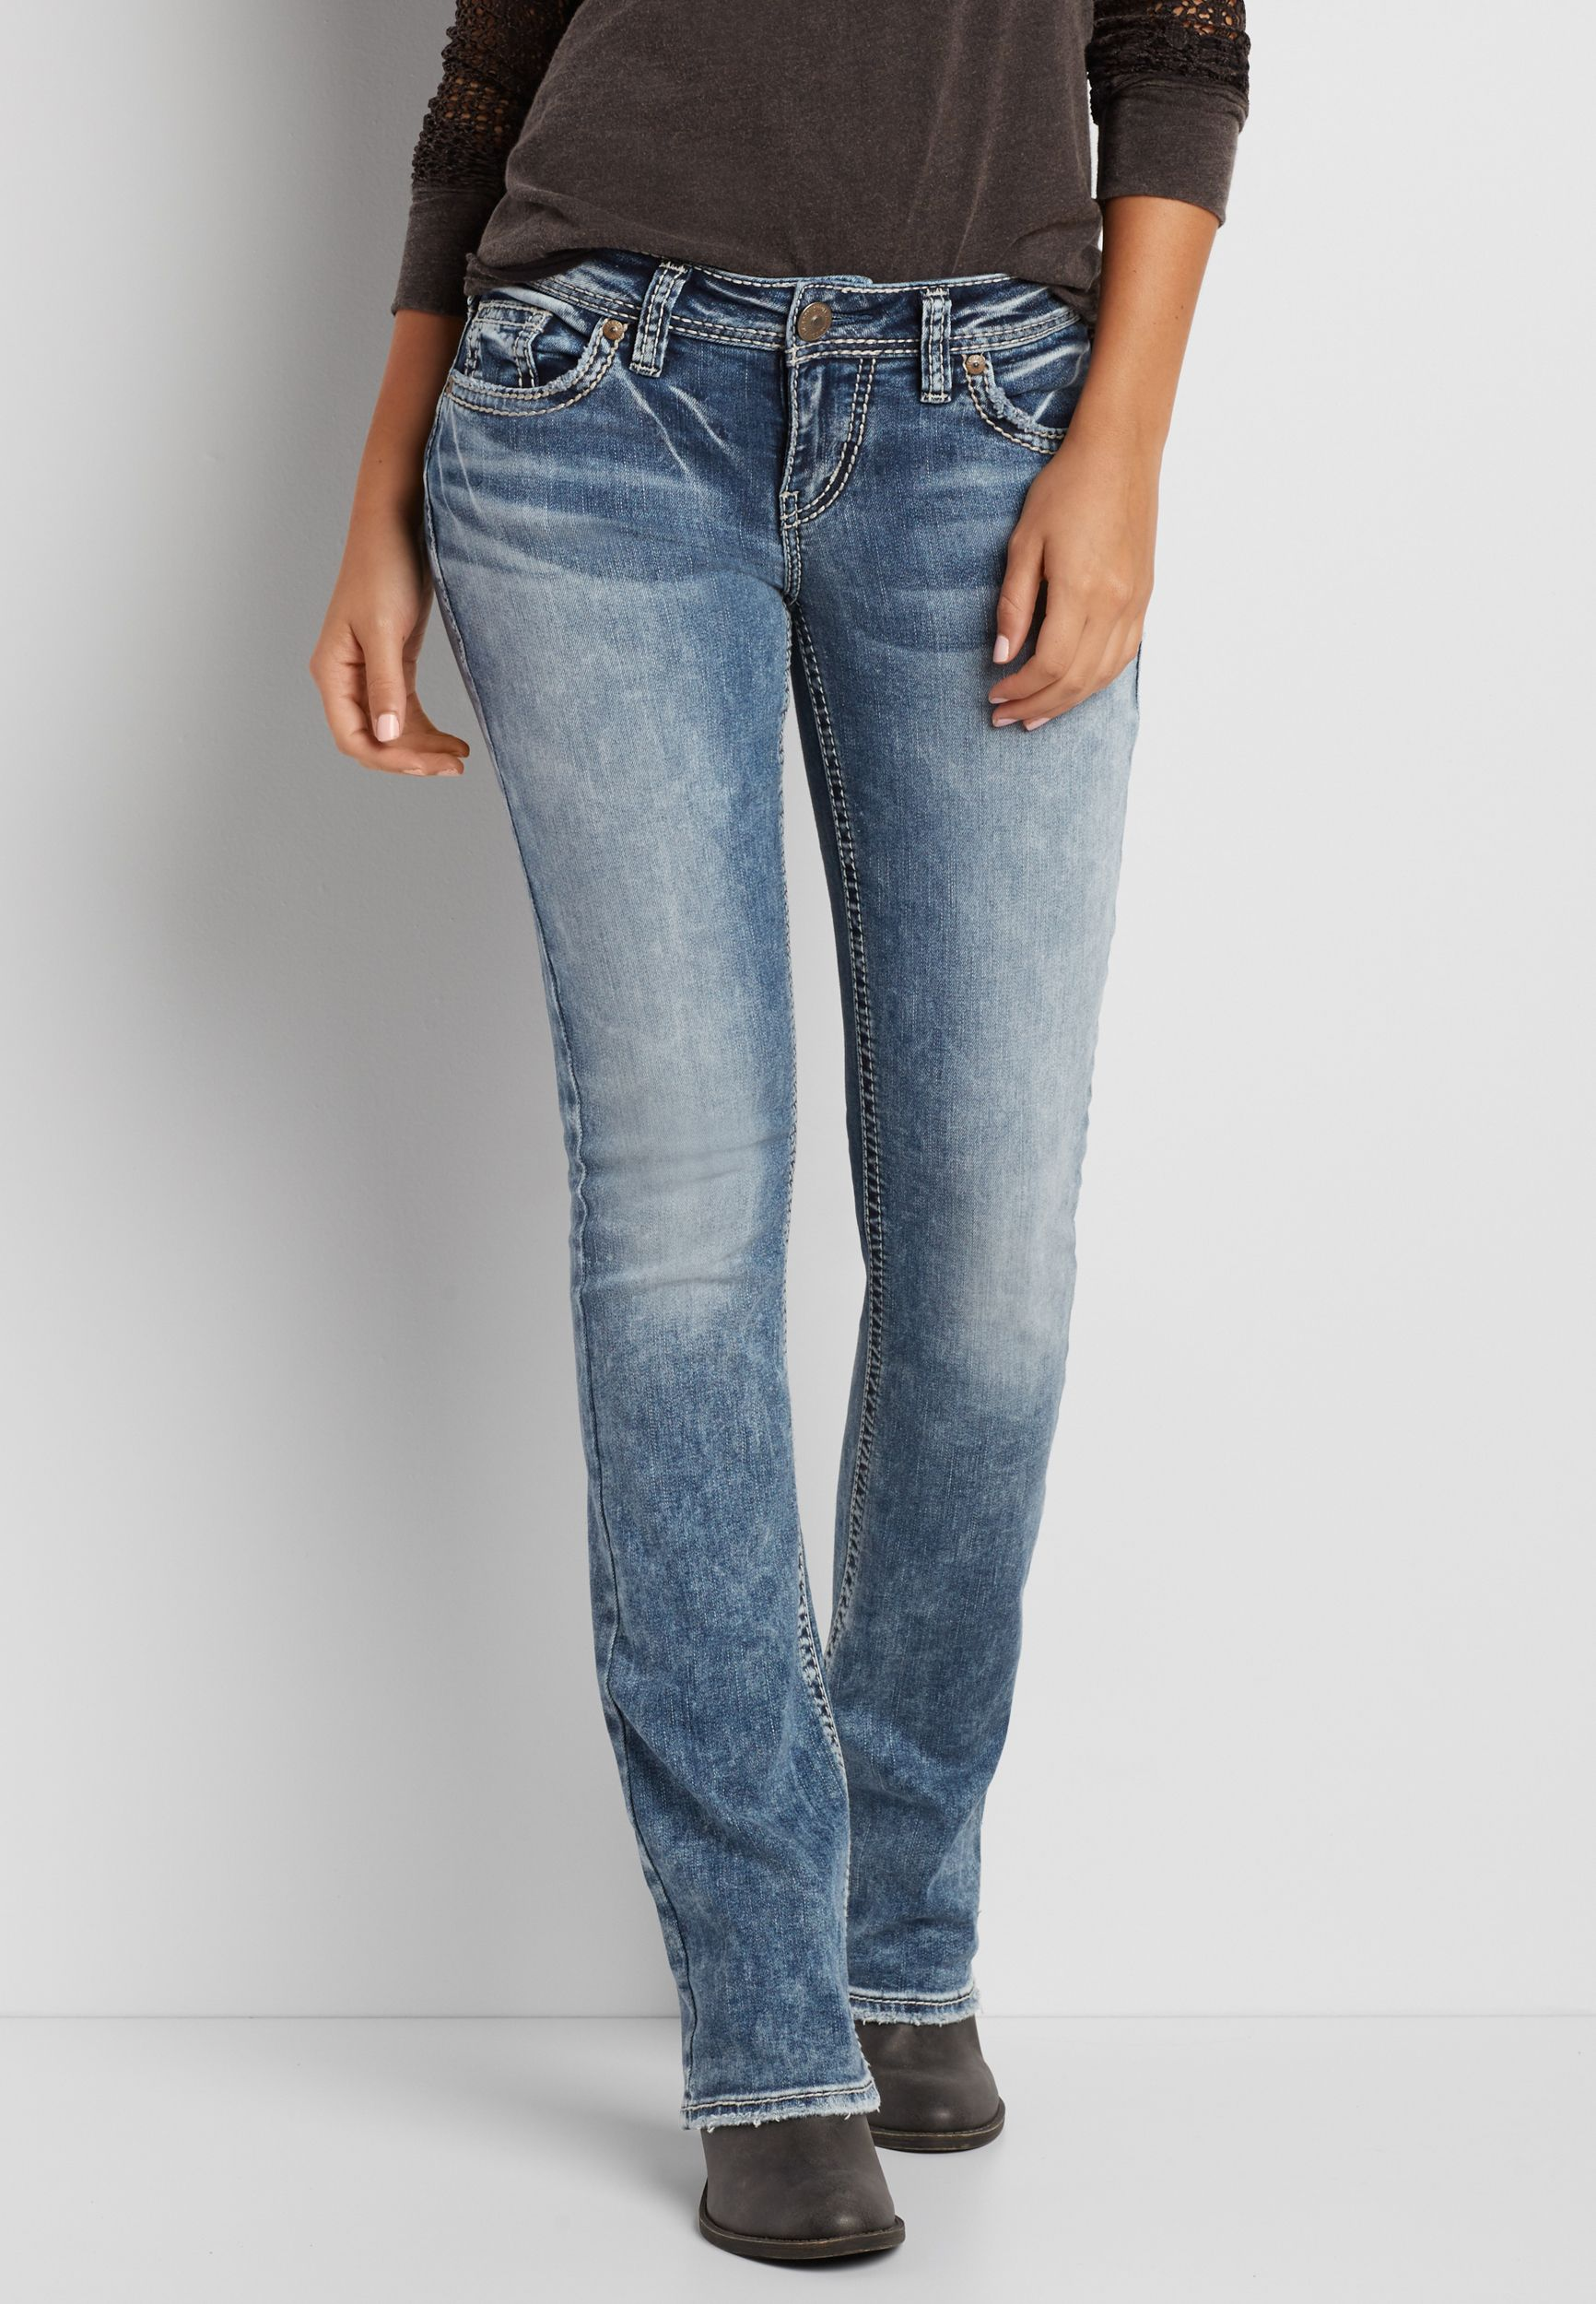 4db679c7bf2 Silver Jeans Co. ® Aiko bootcut jeans in marbled medium wash (original  price, $99.00) available at #Maurices